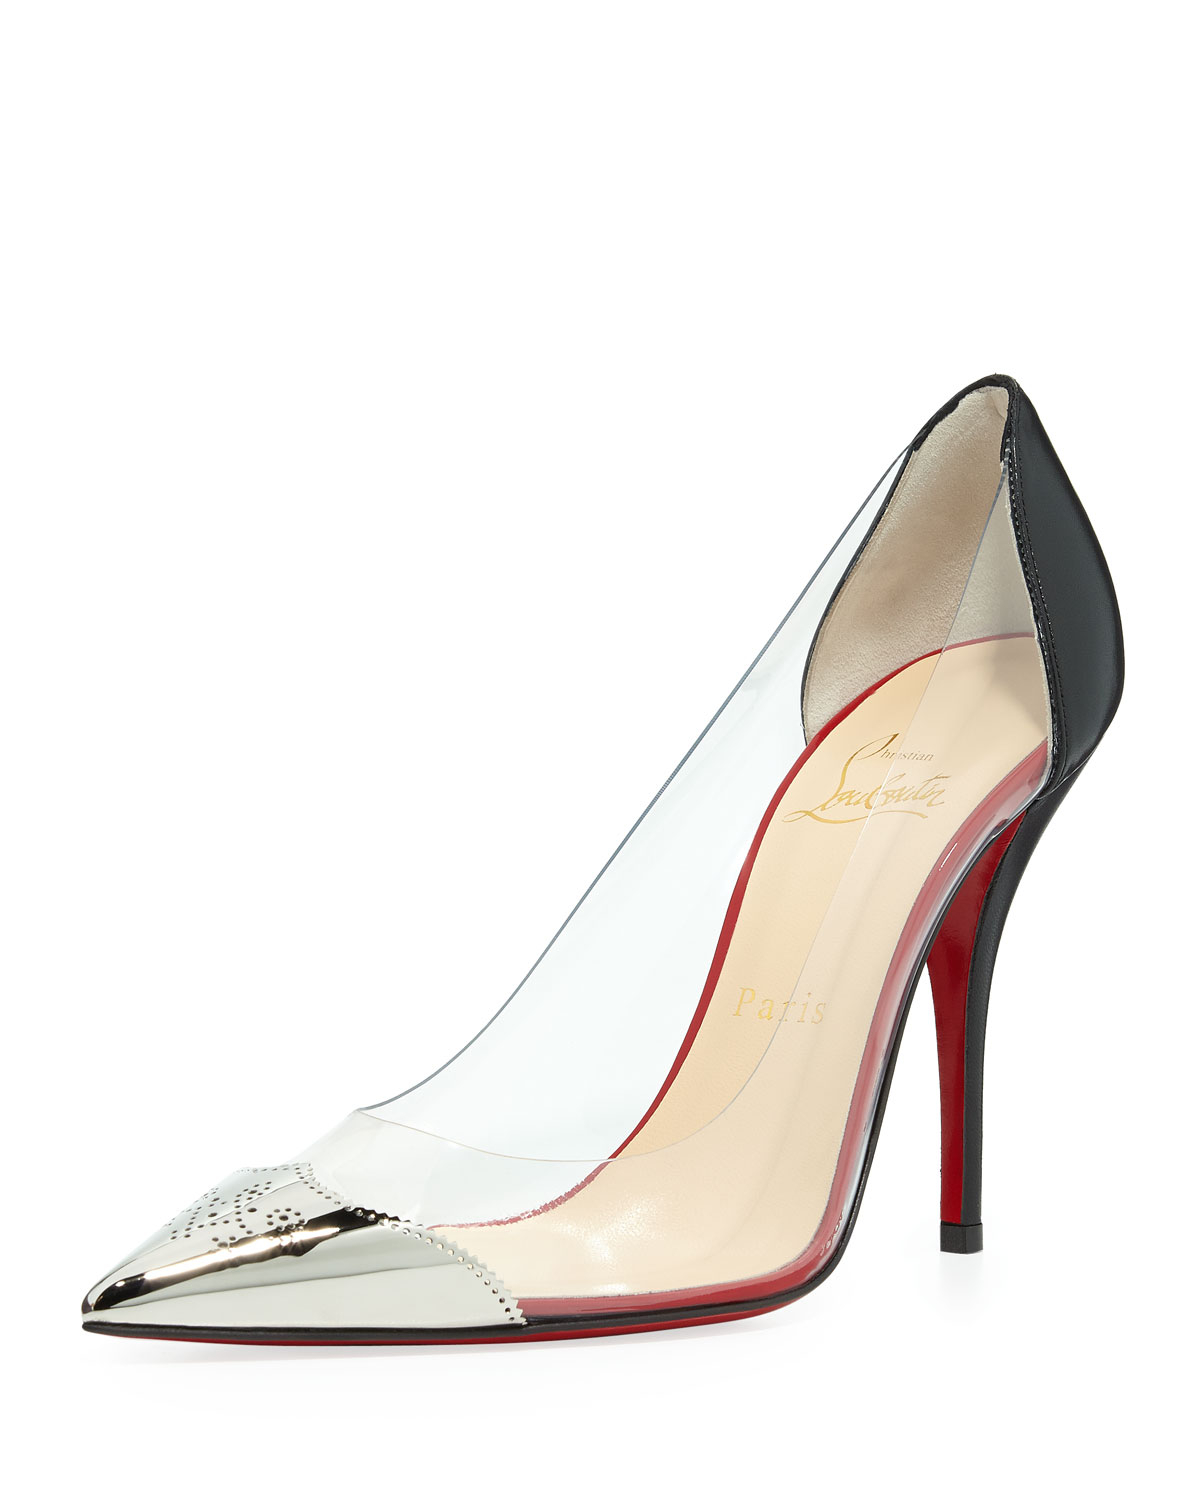 fe954a5646f8 Lyst - Christian Louboutin Djalouzi Pvc Captoe Red Sole Pump Black ...